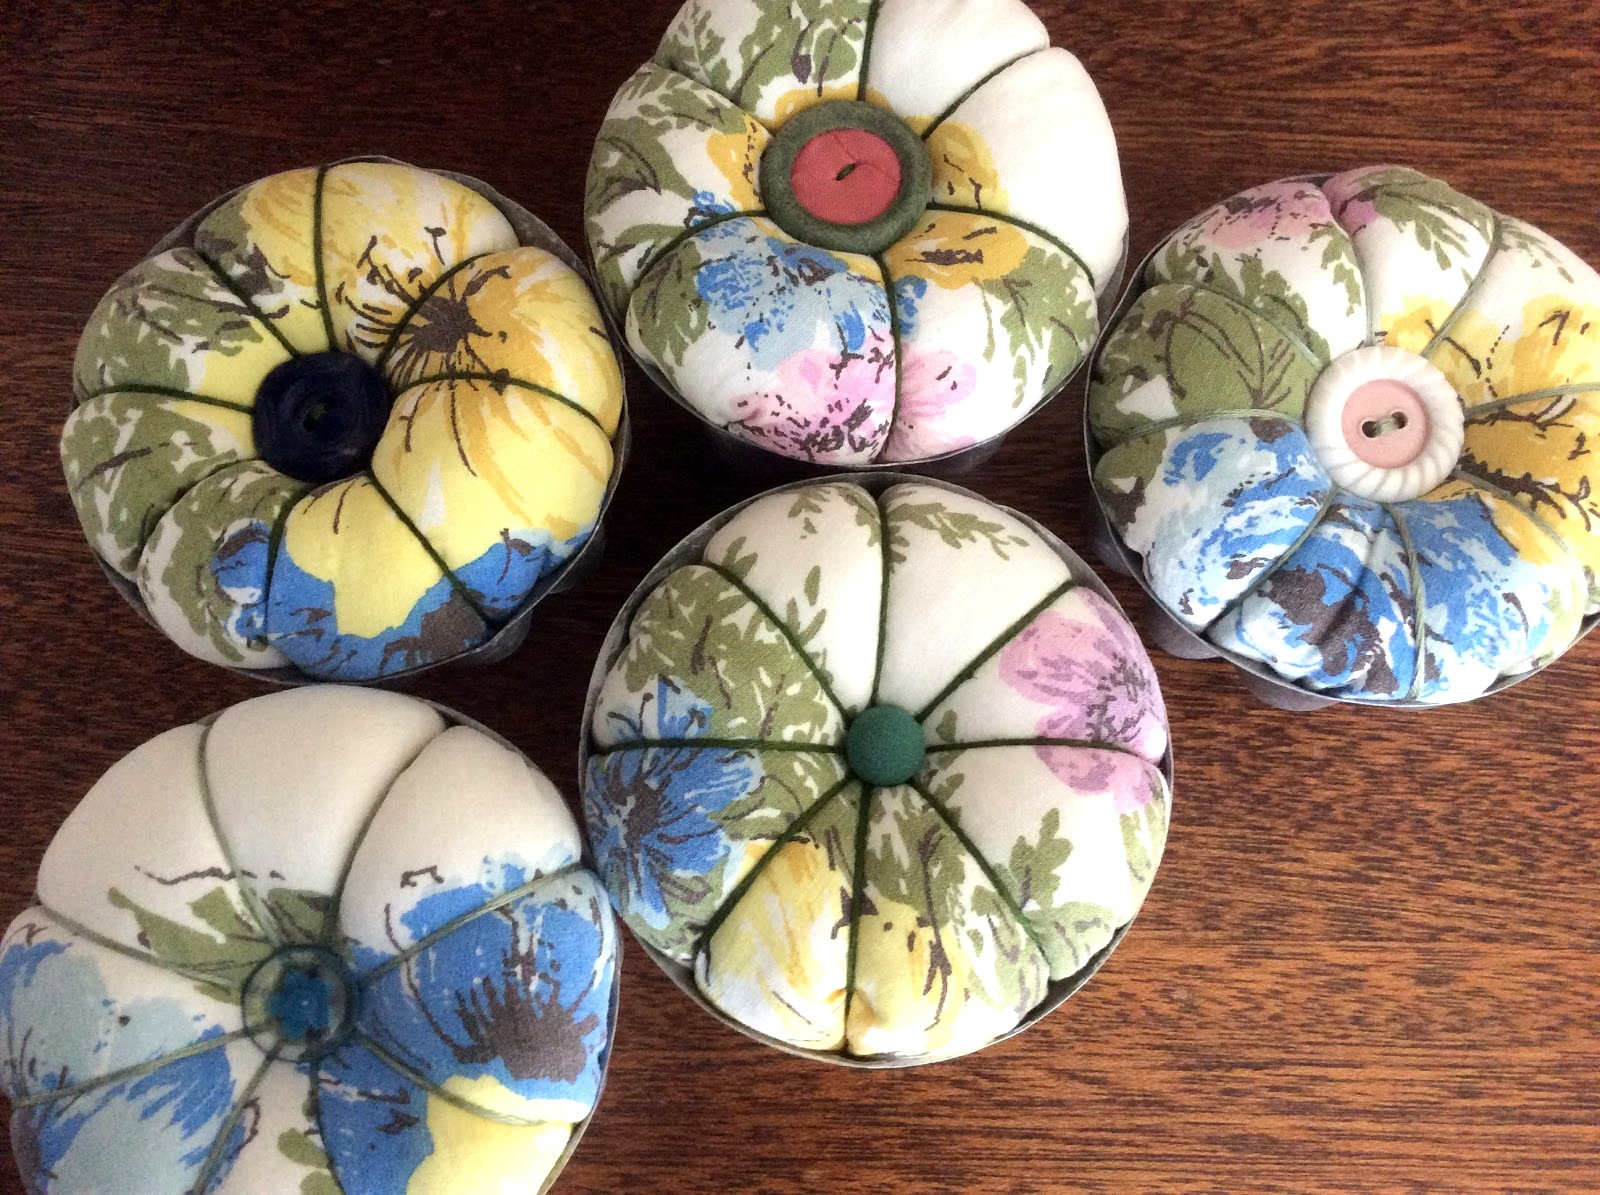 Jello mold pincushion by Fresh Vintage By Lisa S, featured on DIY Salvaged Junk Projects 527 on Funky Junk!